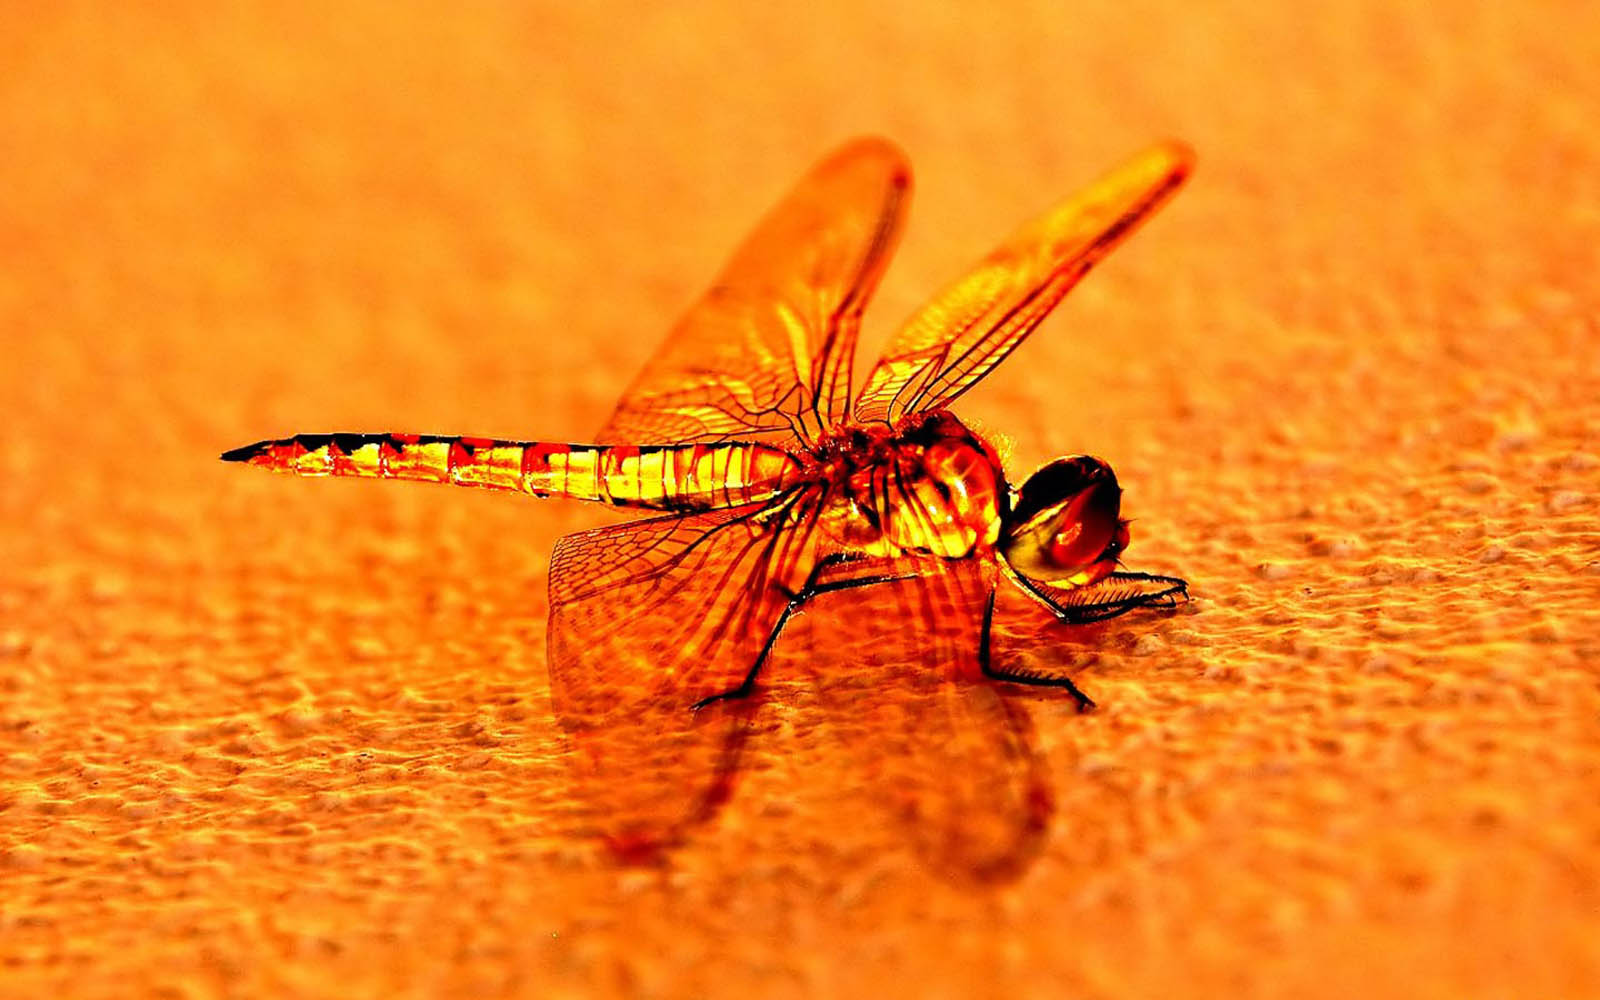 7 Horse Wallpaper 3d Wallpapers Dragonfly Wallpapers